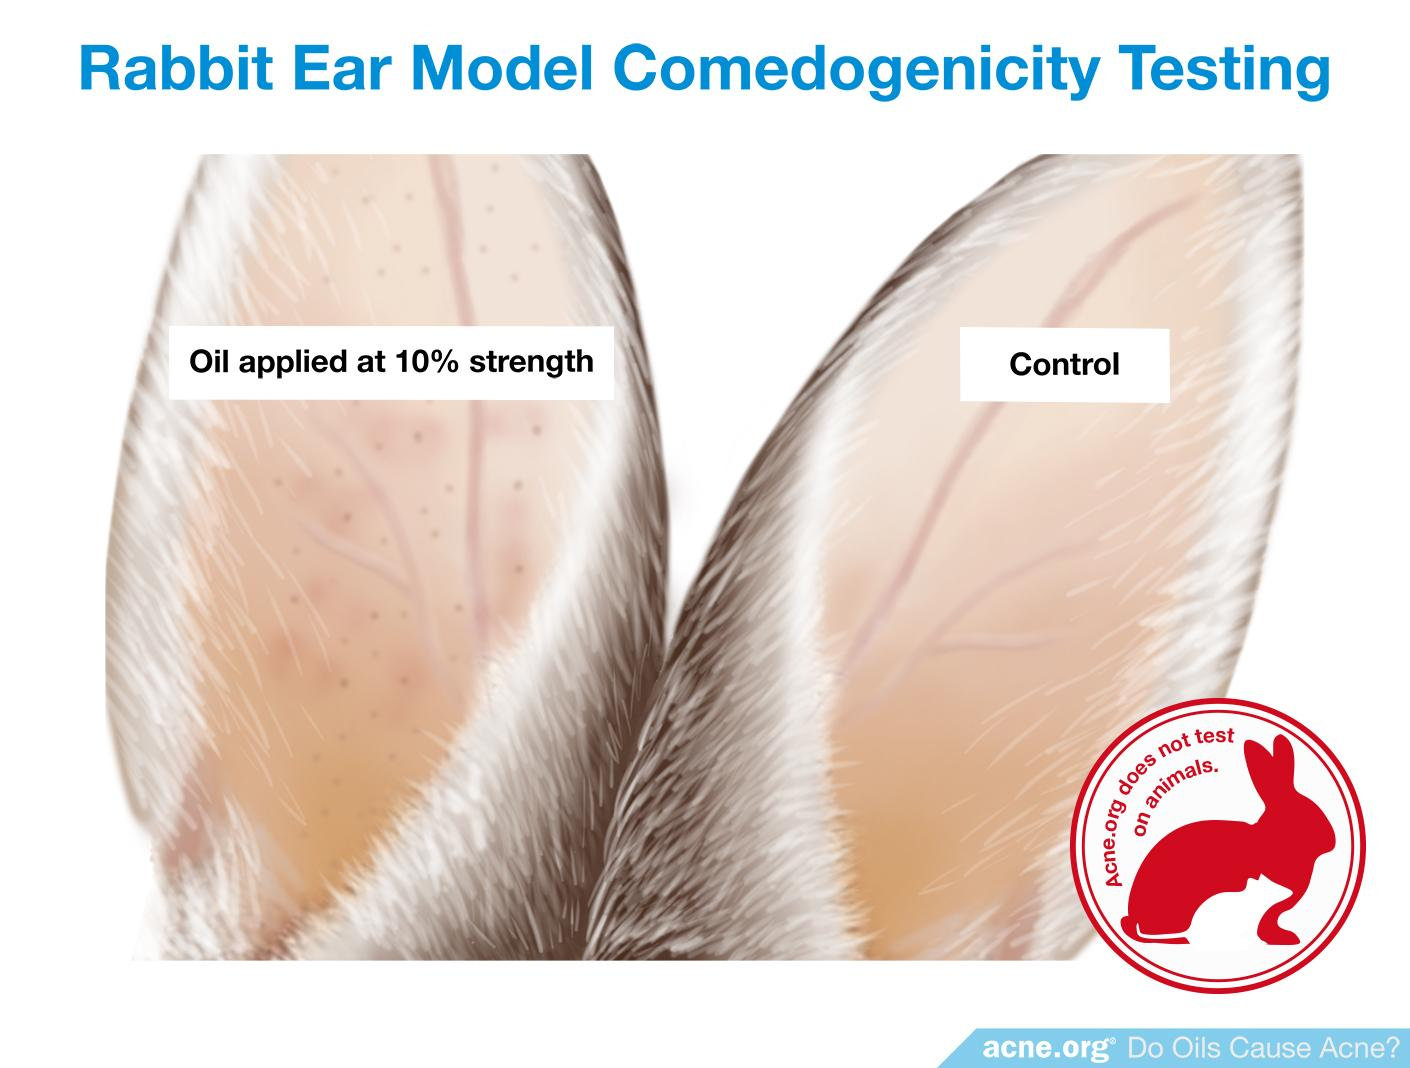 Rabbit Ear Model Comedogenicity Testing